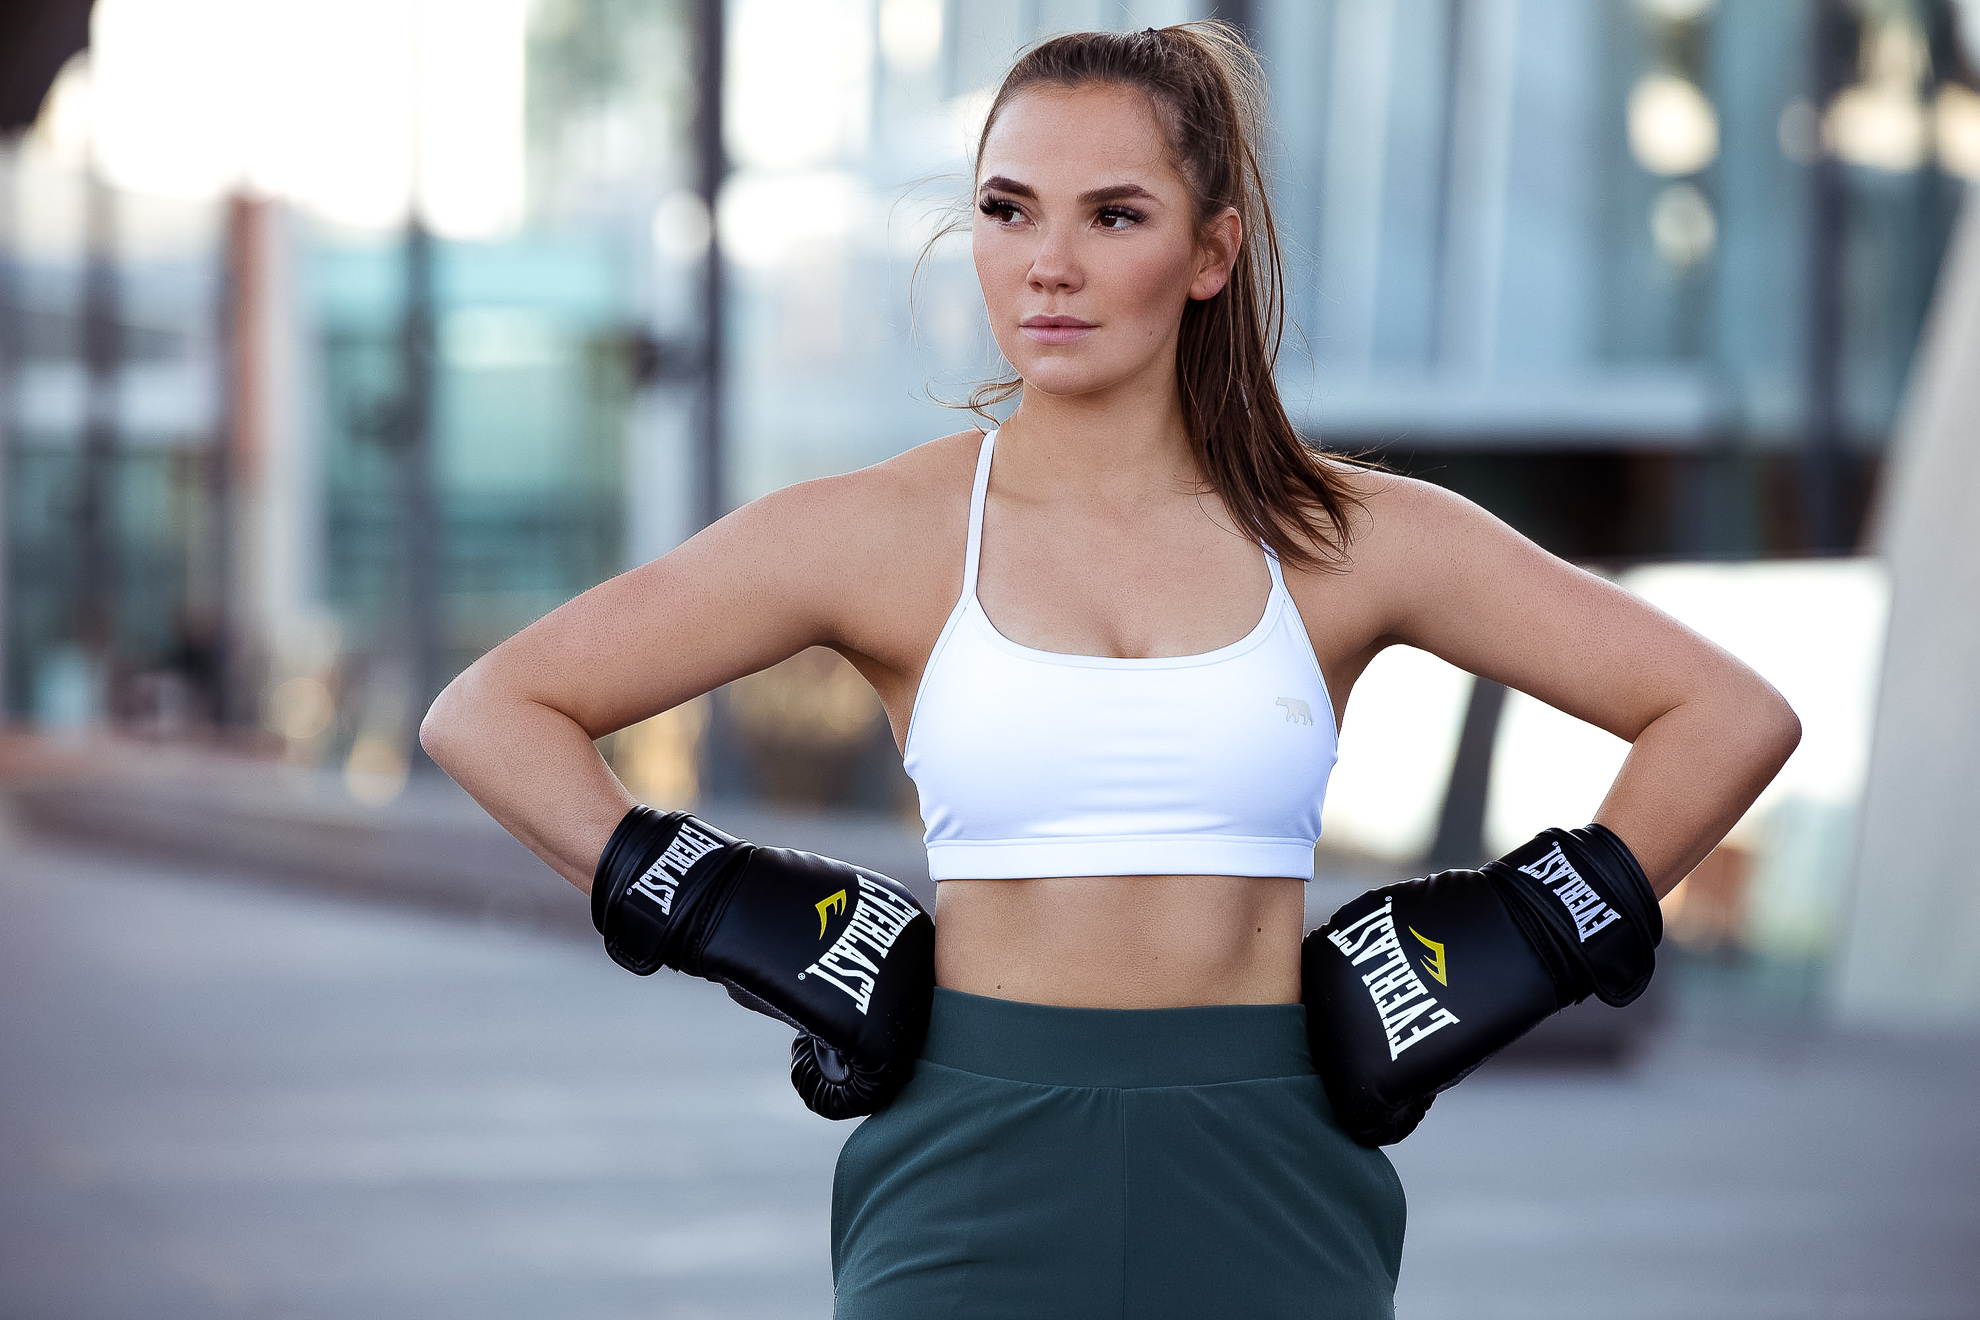 Ruby standing with her hands on her hips wearing Everlast boxing gloves with white crop top